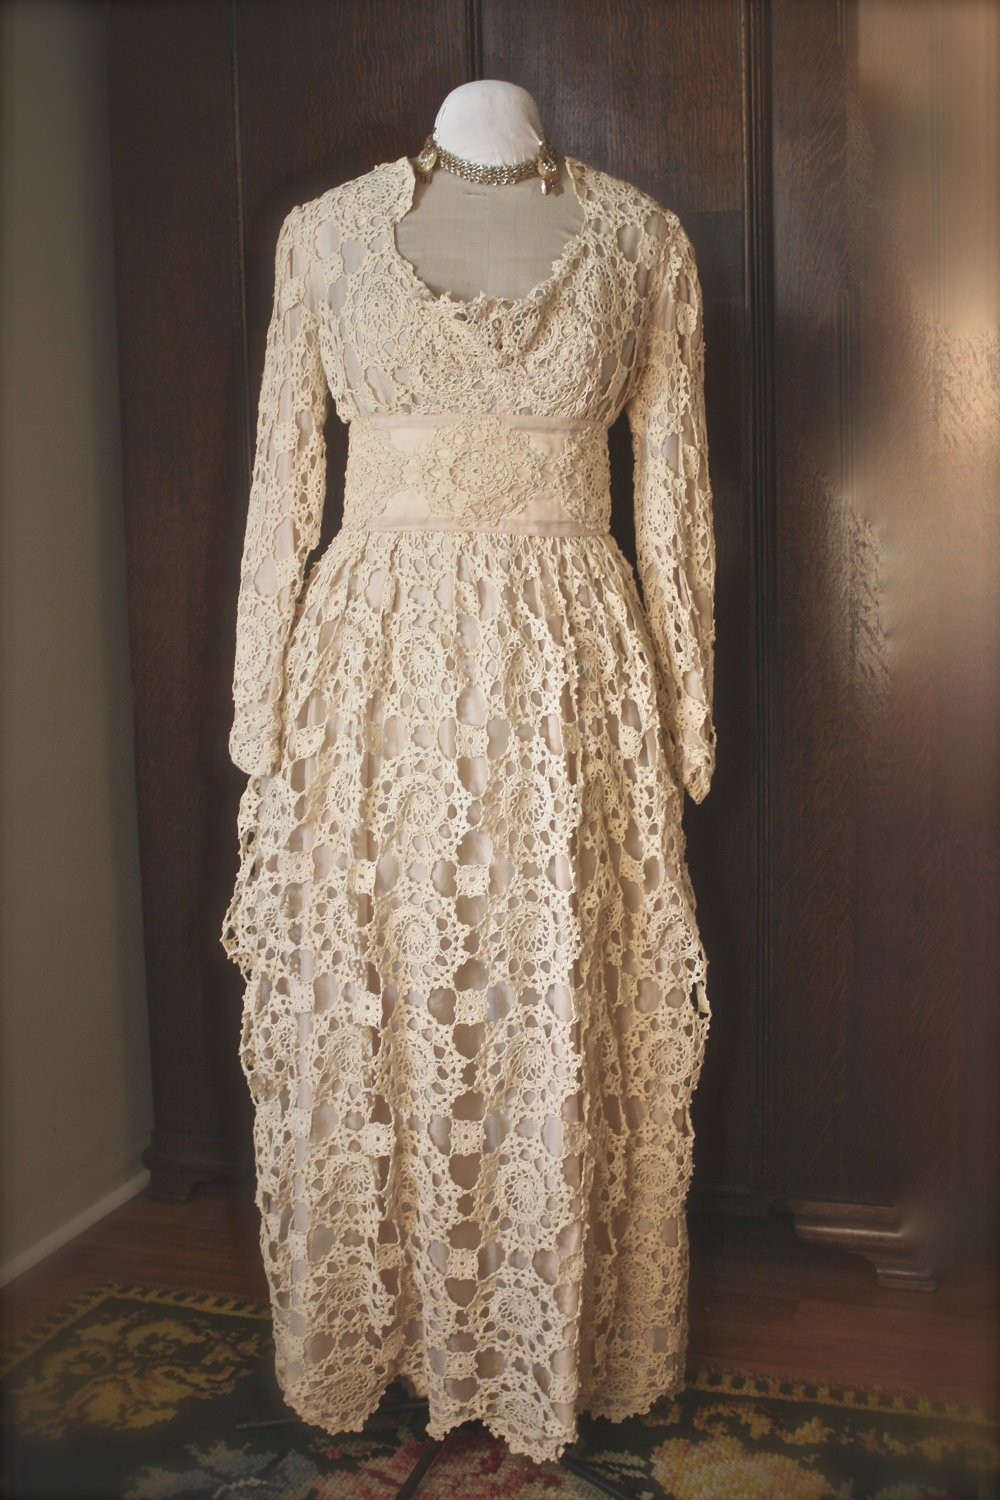 Crochet Wedding Beautiful Antique Crochet Wedding Dress Sale Of Beautiful 41 Pics Crochet Wedding